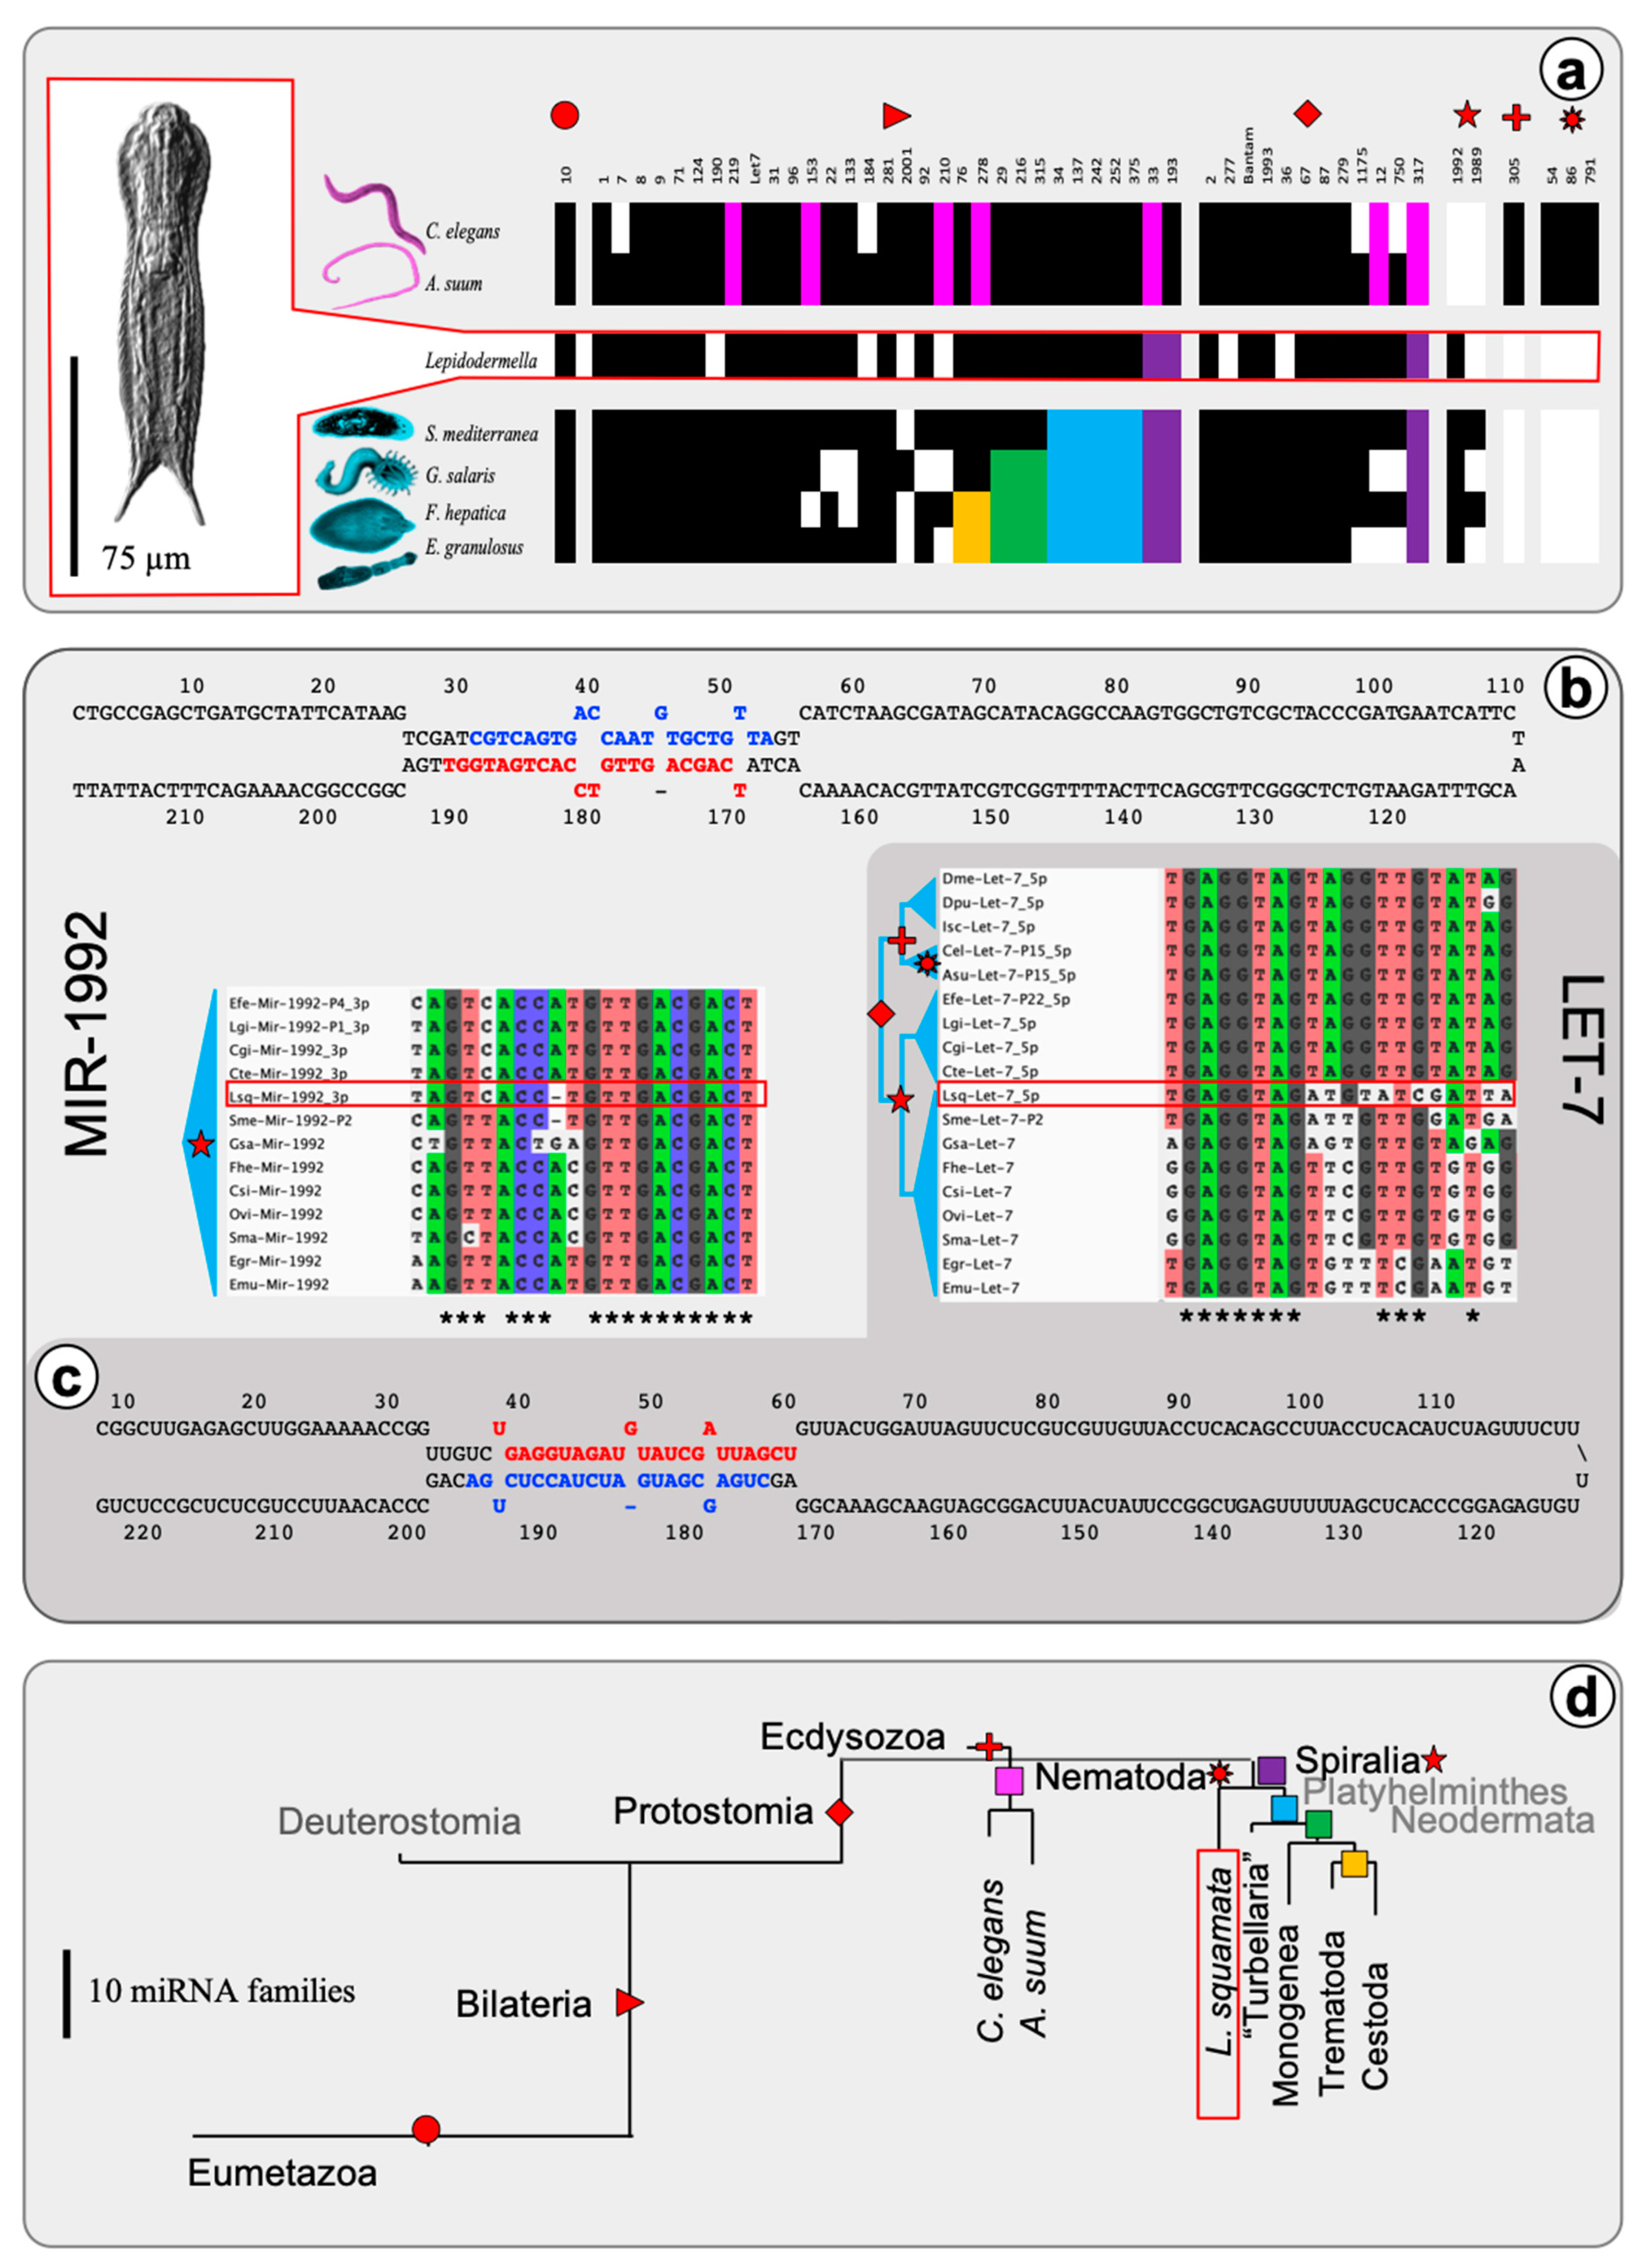 ncRNA | Free Full-Text | Evolutionary Implications of the microRNA